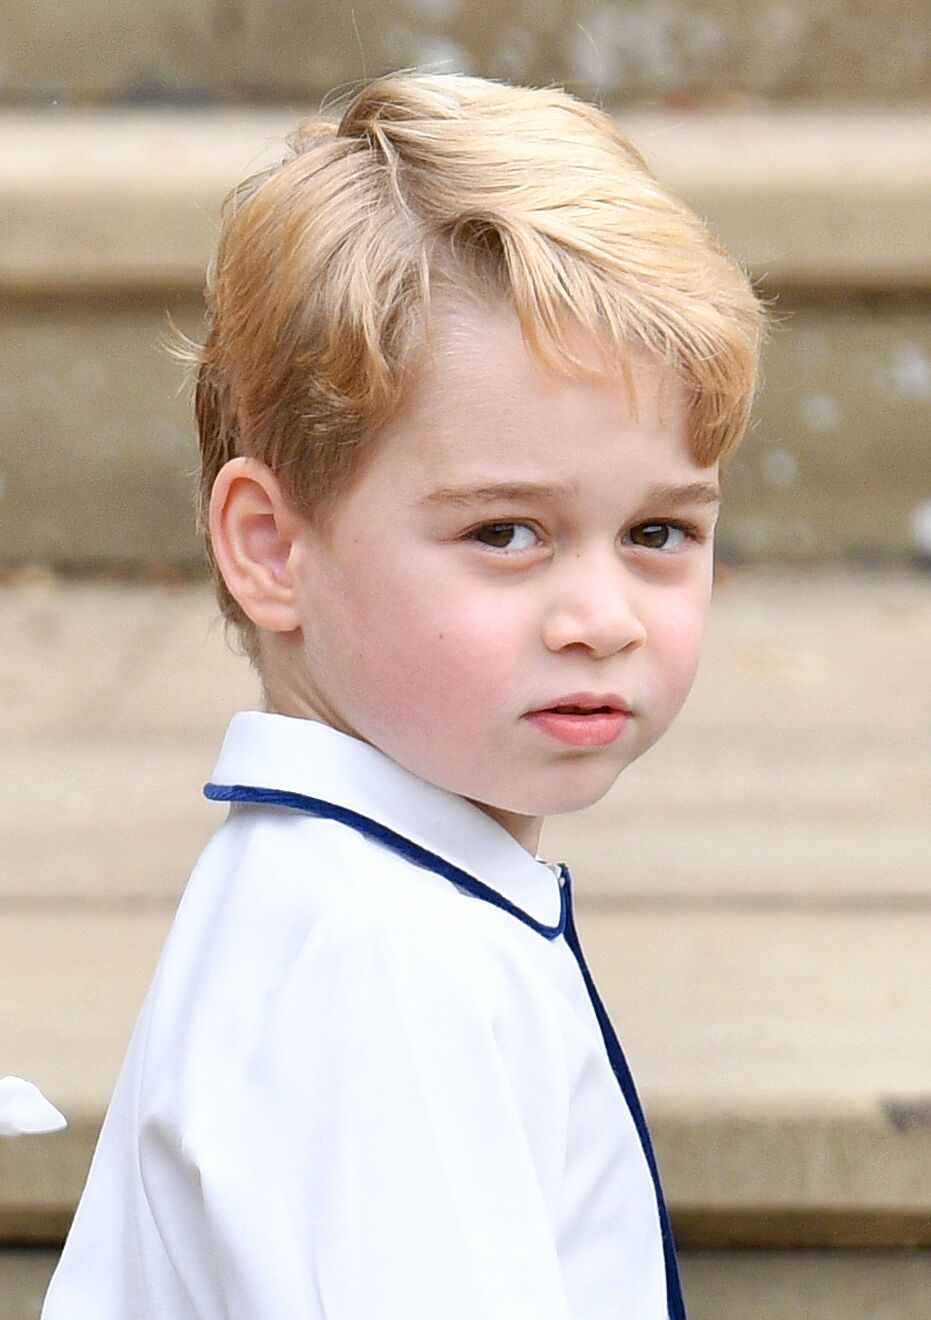 Prince George of Cambridge attends the wedding of Princess Eugenie of York and Jack Brooksbank at St George's Chapel in Windsor, England | Photo: Getty Images